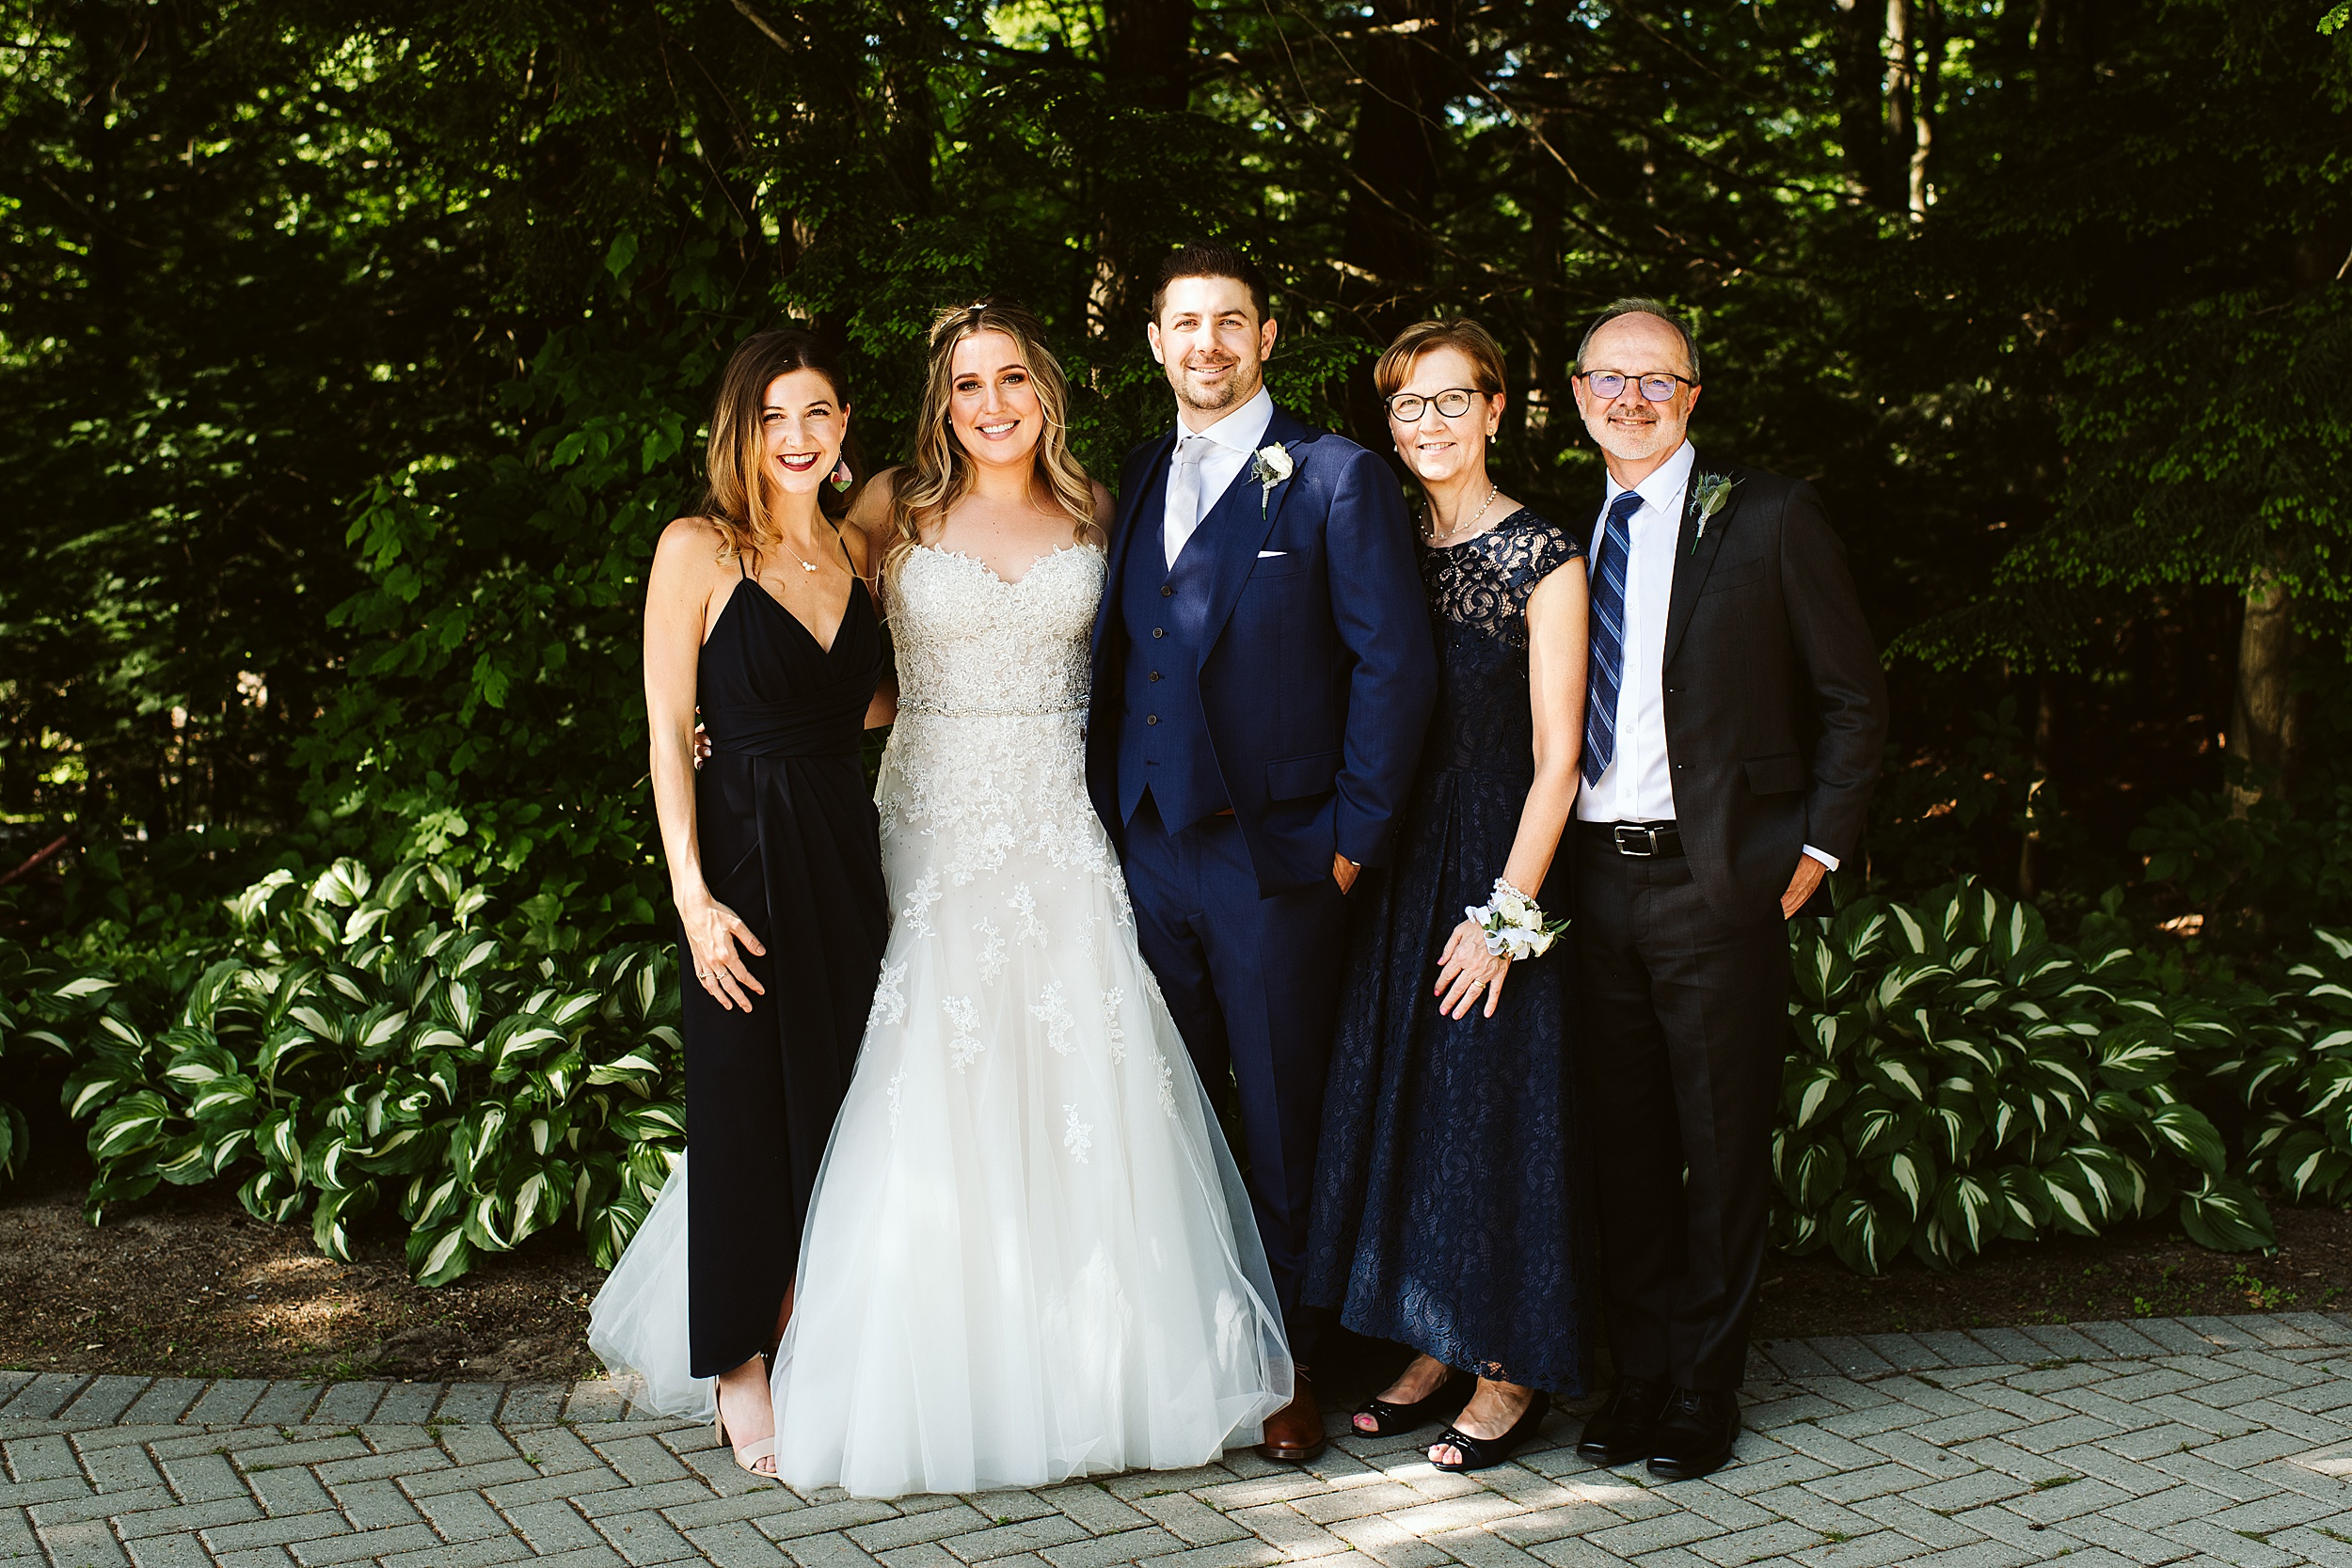 Toronto-Wedding-Photographers-Pheasant-run-golf-club-newmarket_0051.jpg